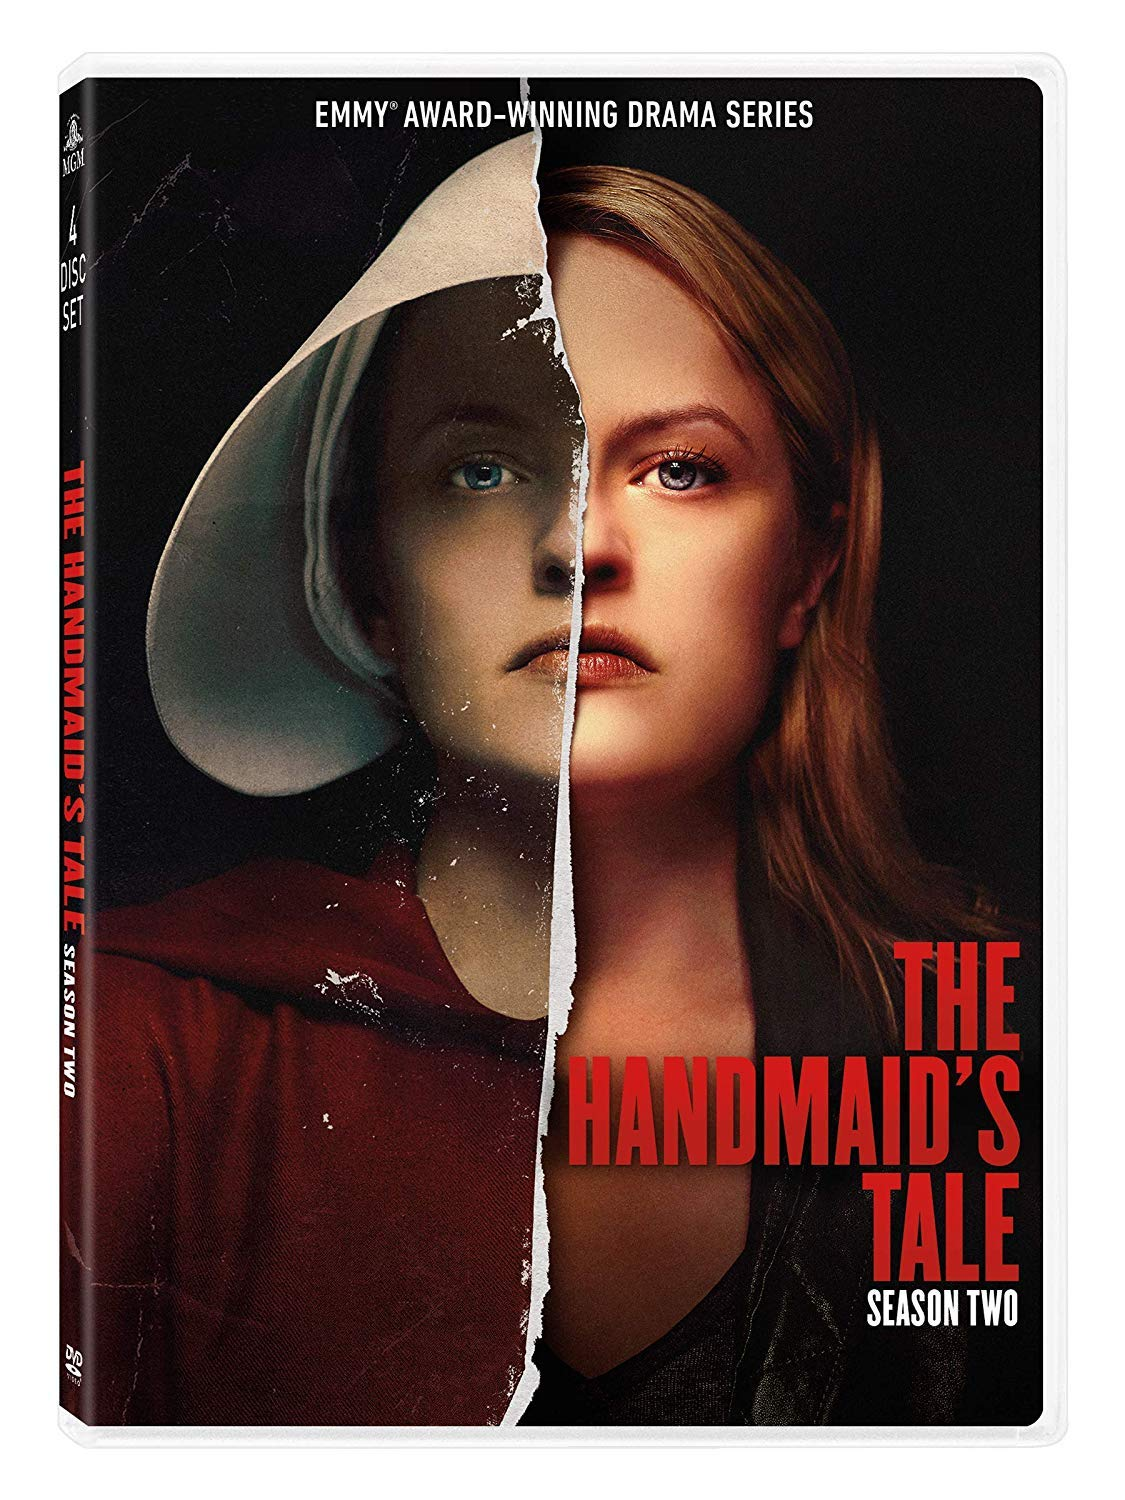 The Handmaid's Tale: Season 2 by Twentieth Century Fox Home Entertainment